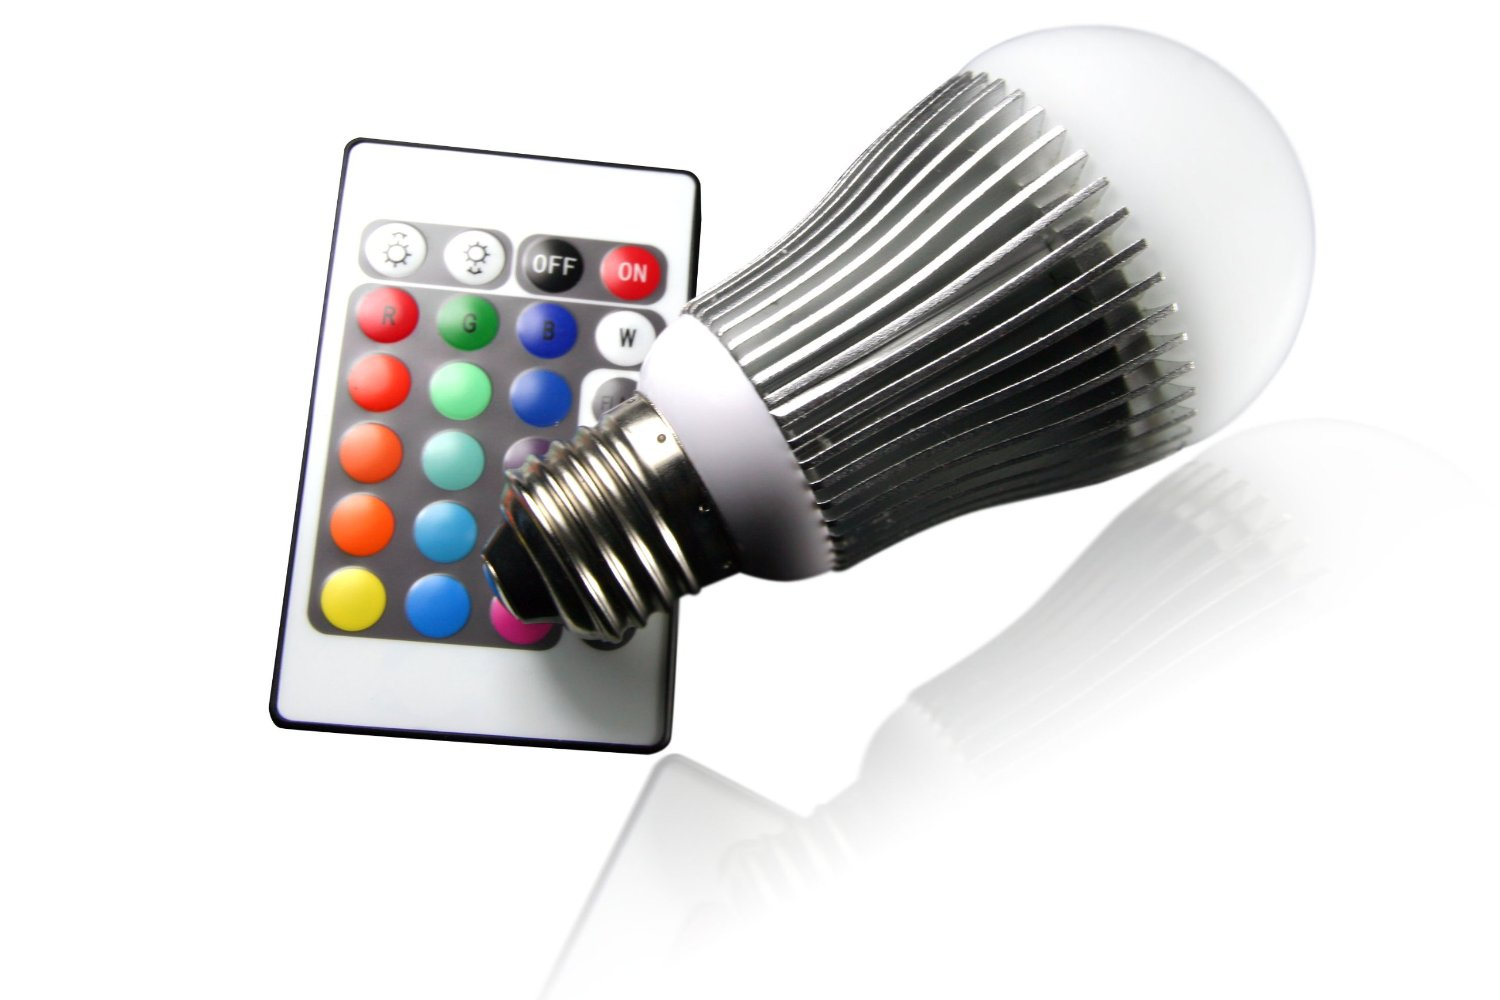 Badezimmer Lampen Dimmbar Led Dimmbar Mit Free Led Bad Ip Dimmbar Lampe Deckenspot